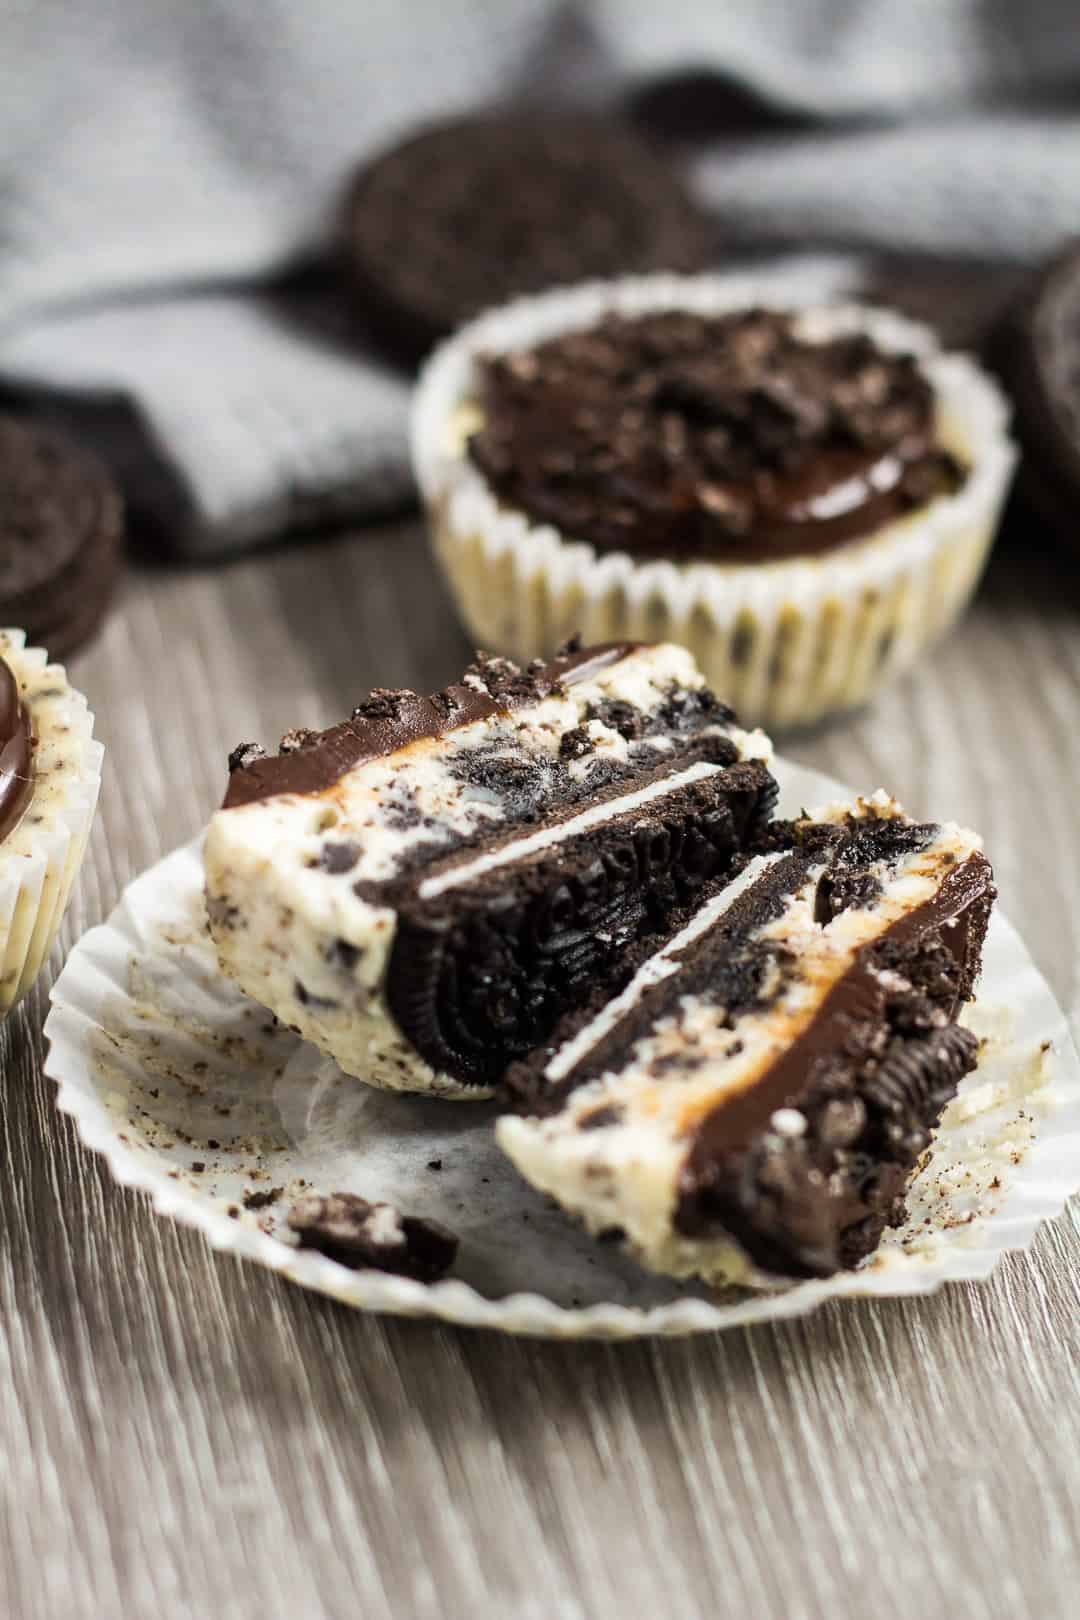 Mini Oreo Cheesecake cut in half in its wrapper to show whole Oreo crust.